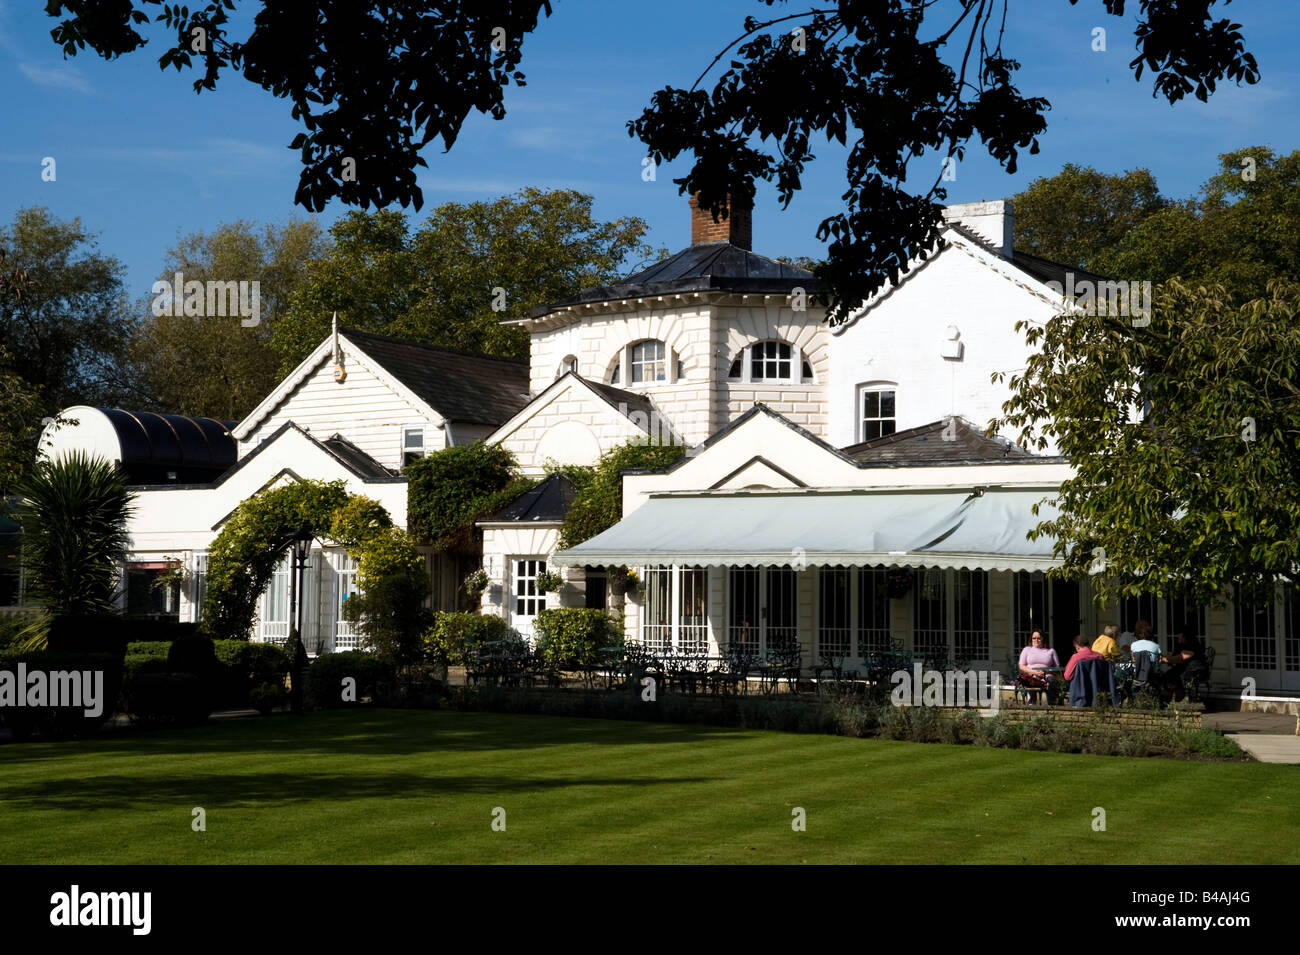 Monkey Island Hotel On A Tiny Island On The Thames In Bray Stock Photo Alamy